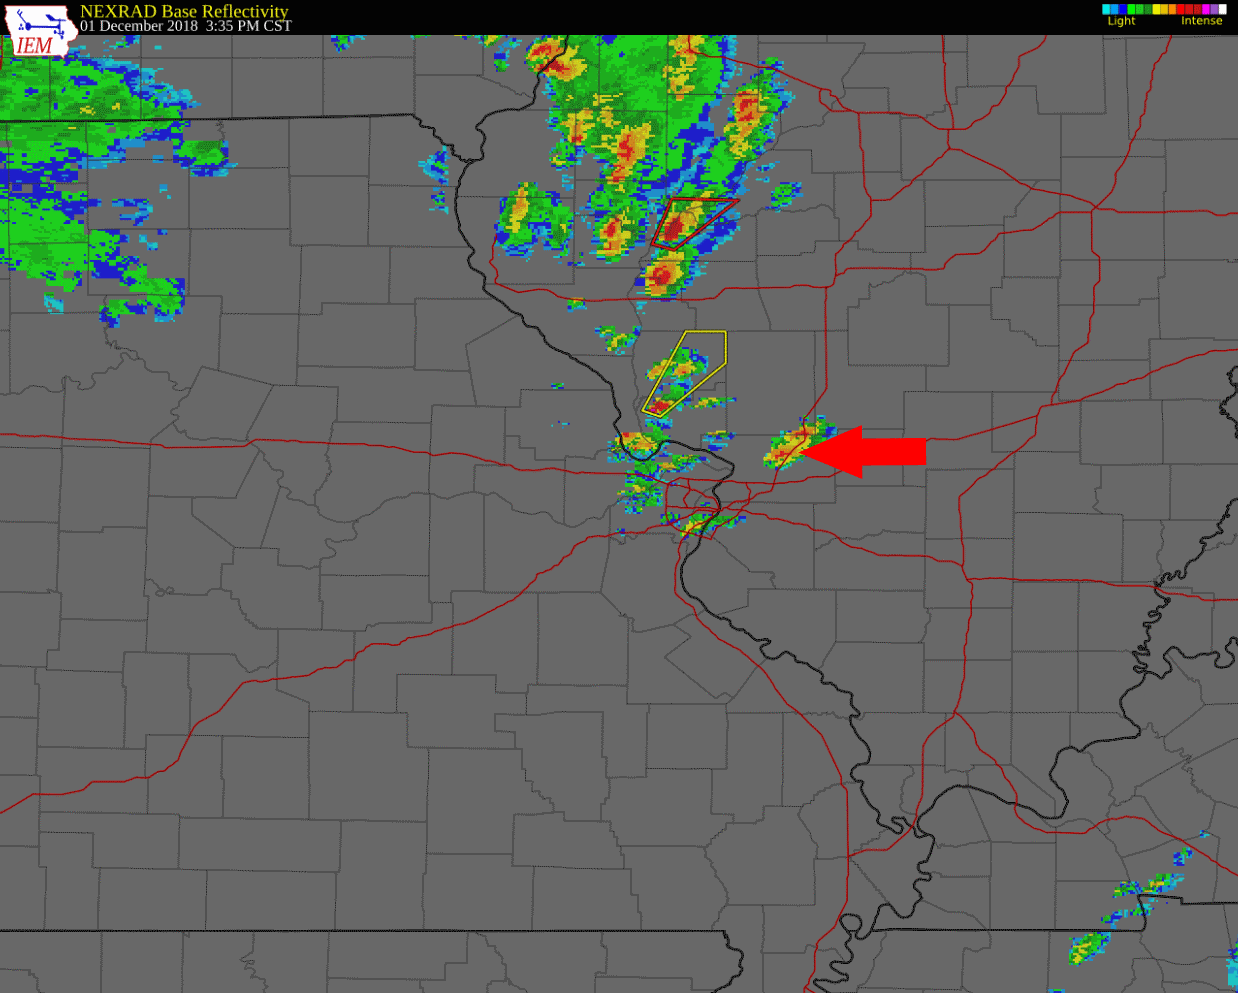 Radar at 3:35 pm, with the arrow pointing to the storm sitting approximately over Hamel, IL along I-55.